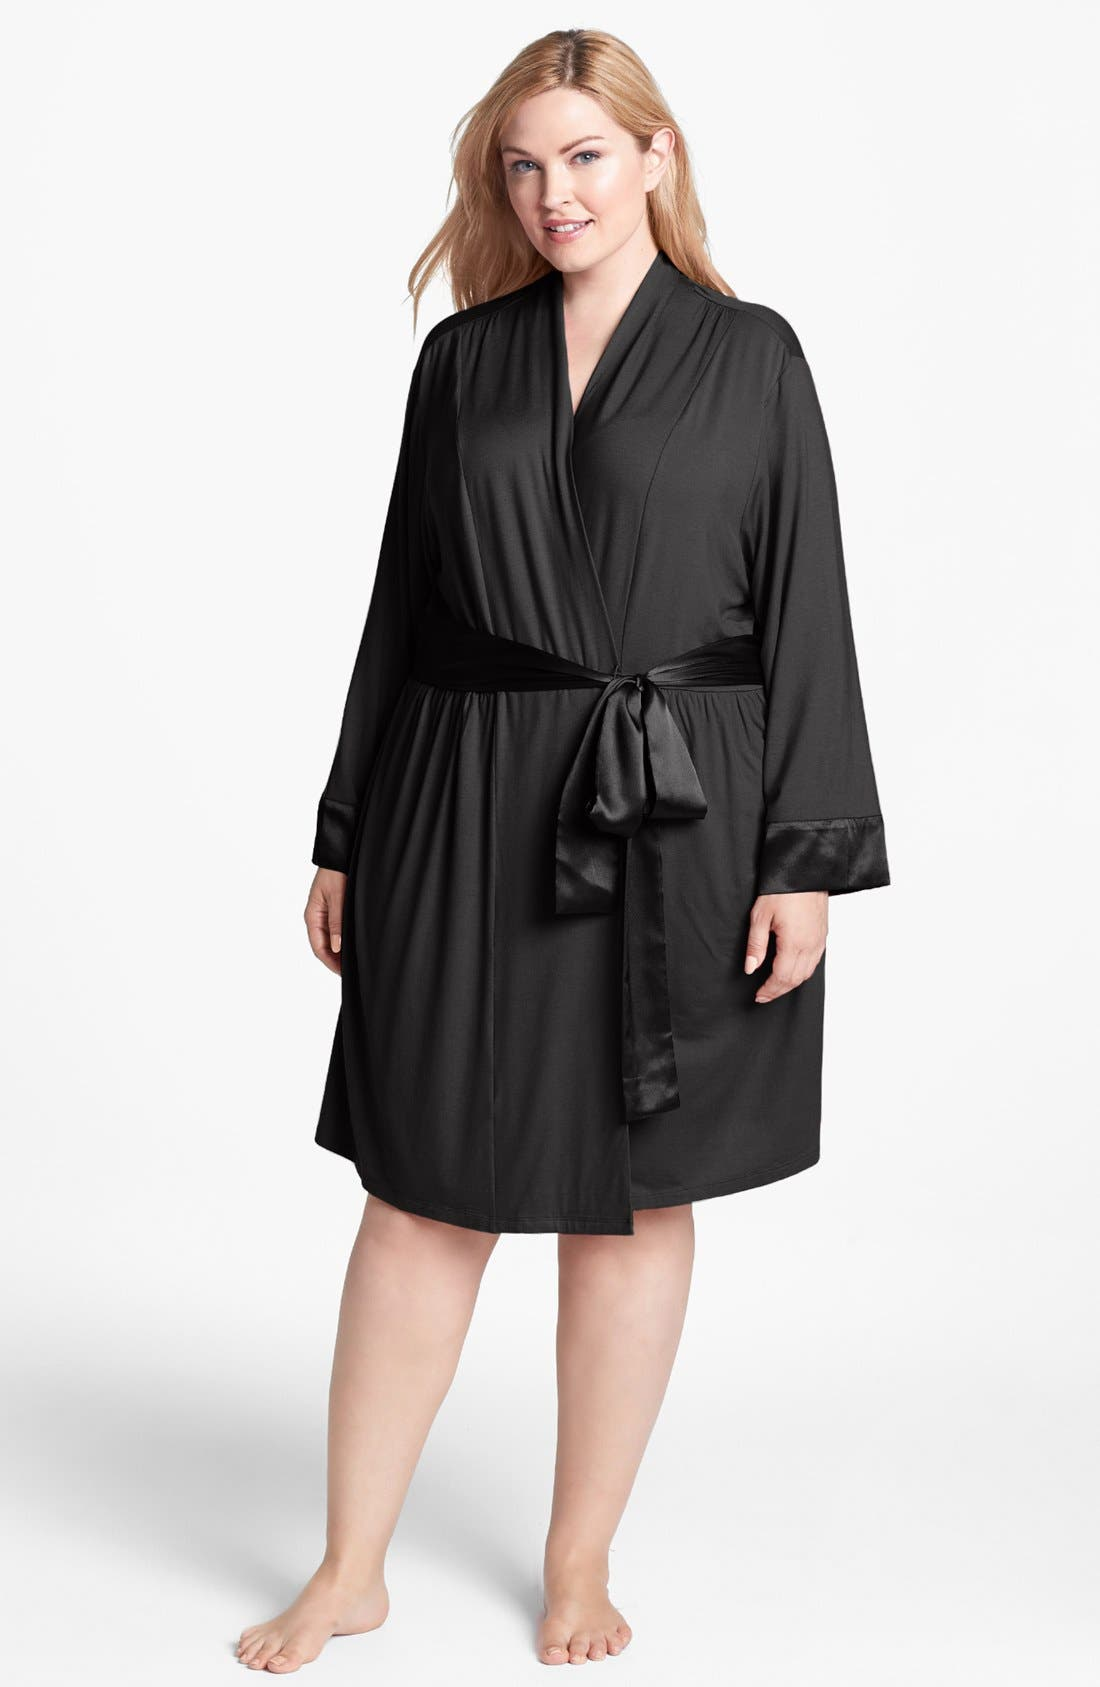 Alternate Image 1 Selected - Midnight by Carole Hochman 'Dream Weaver' Robe (Plus Size)